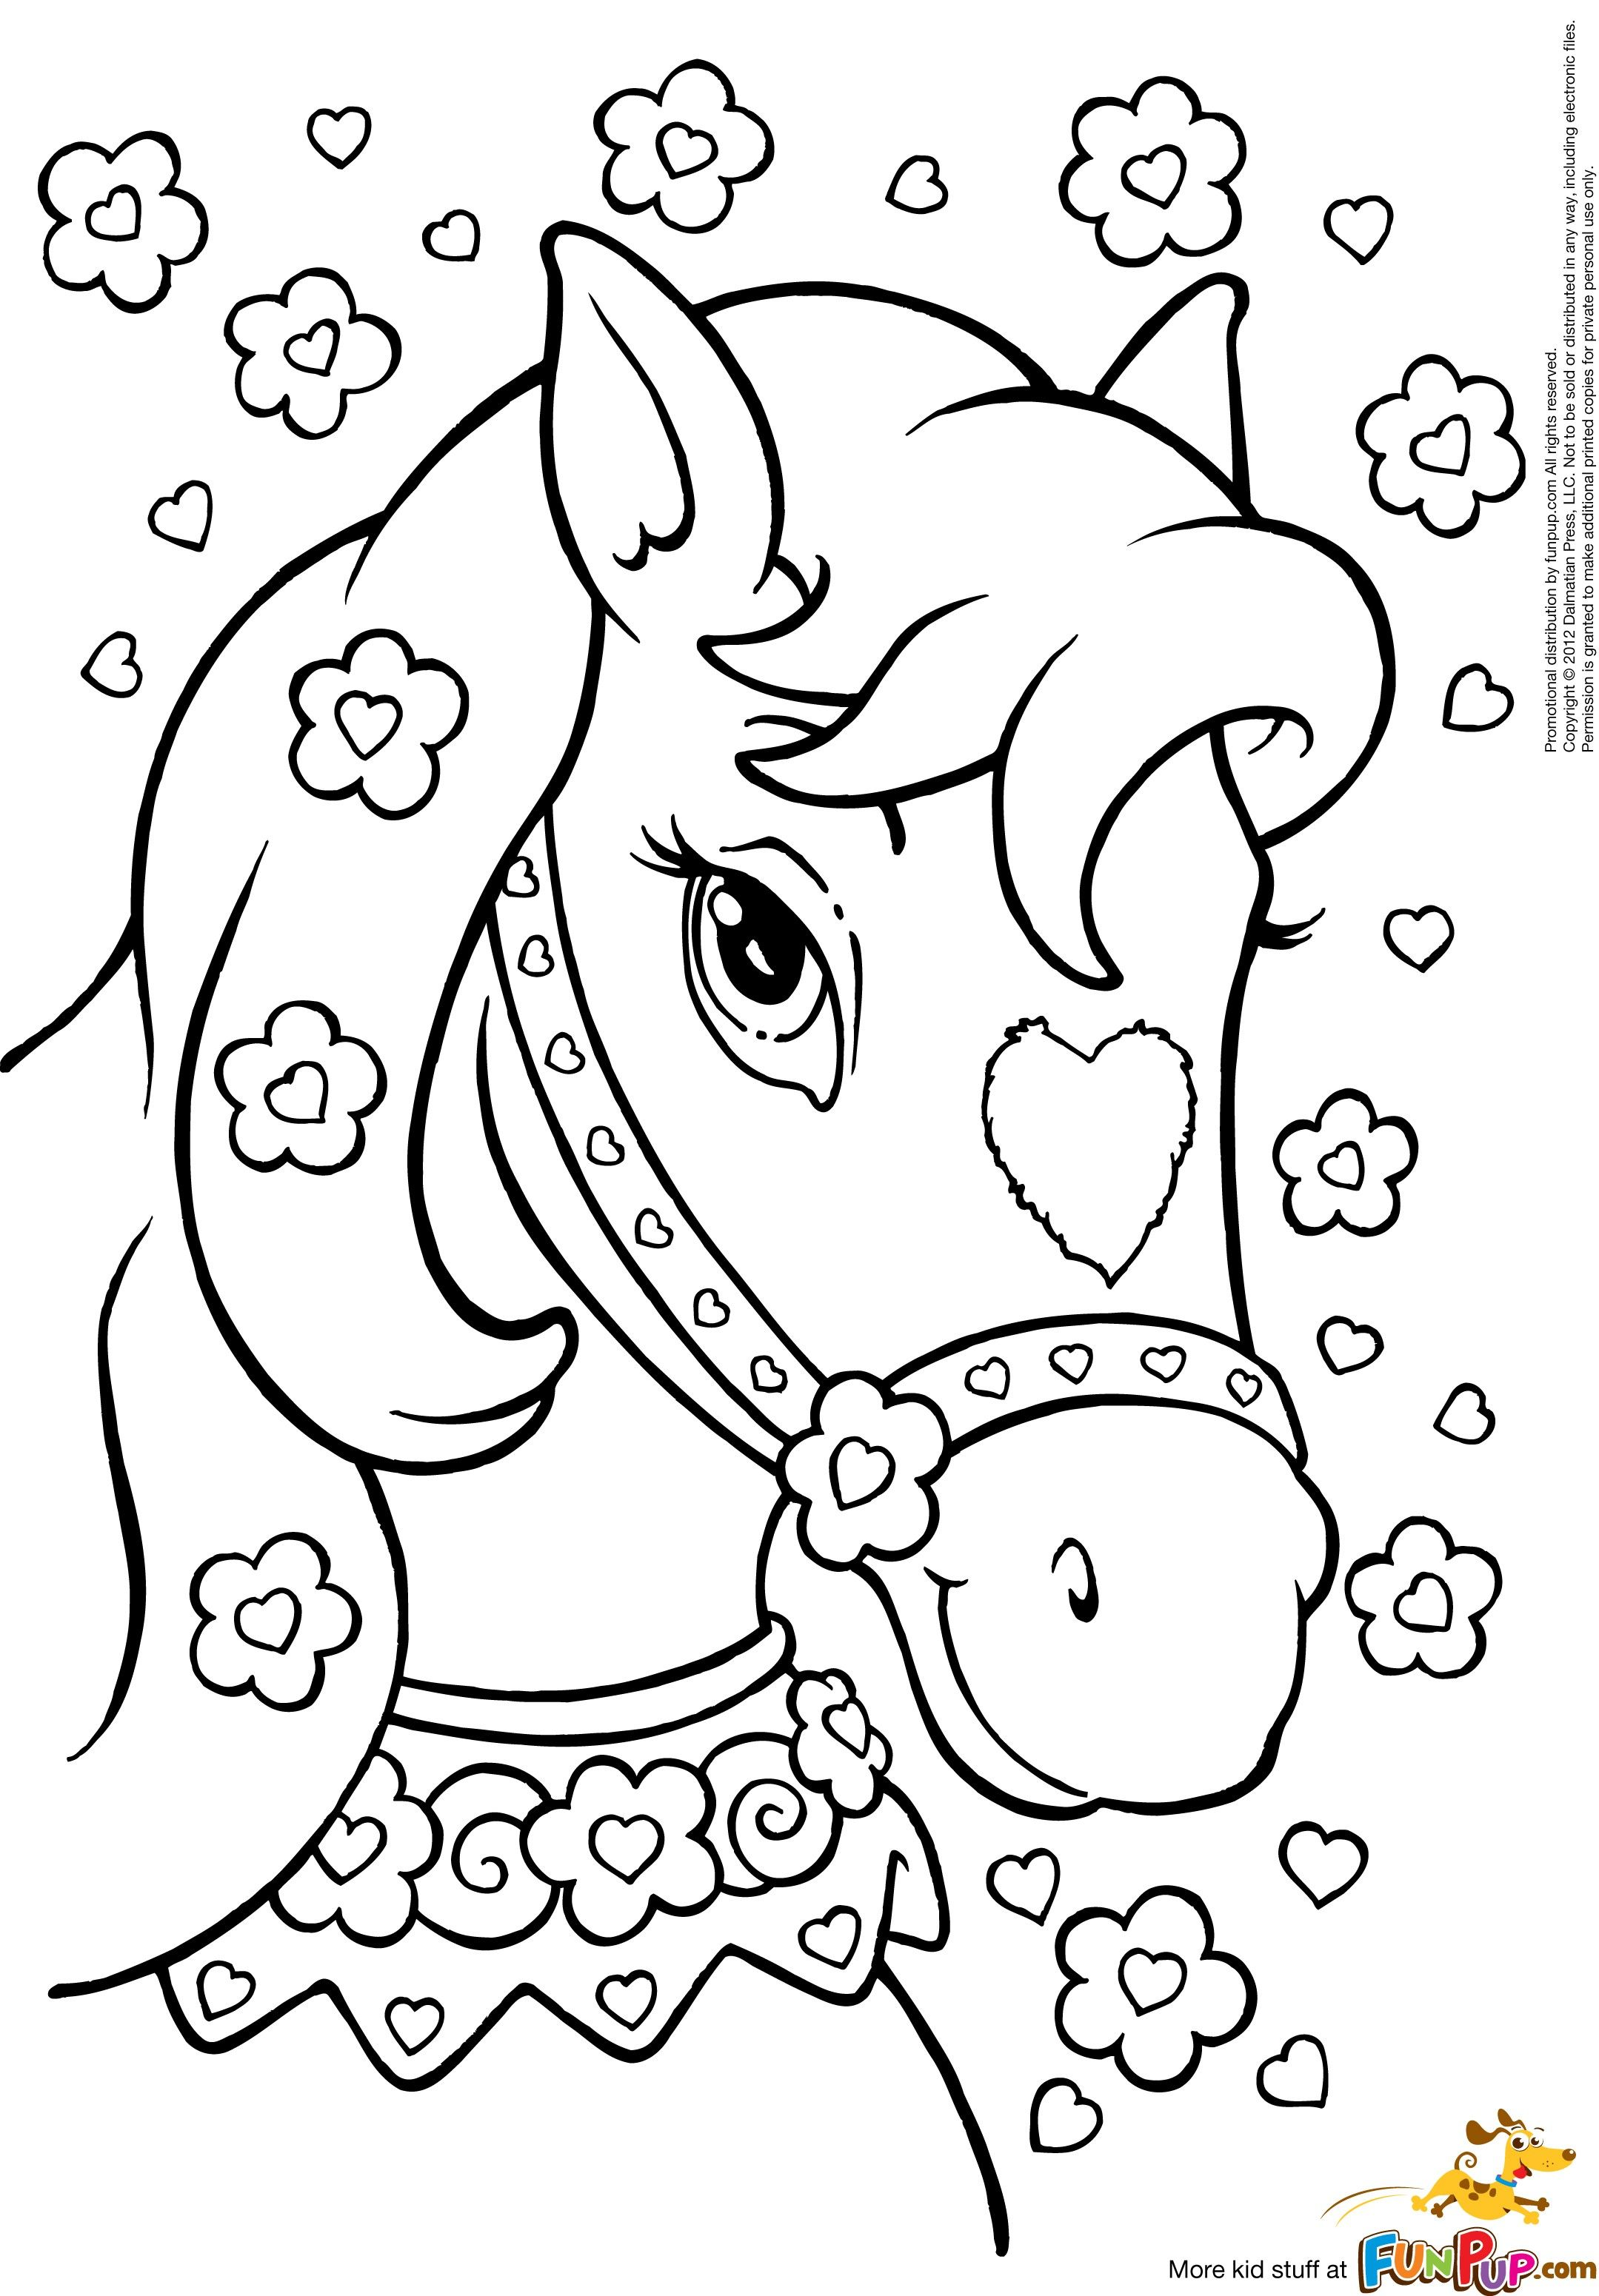 Coloring Pages Princess Pony : Printable princess coloring pages for